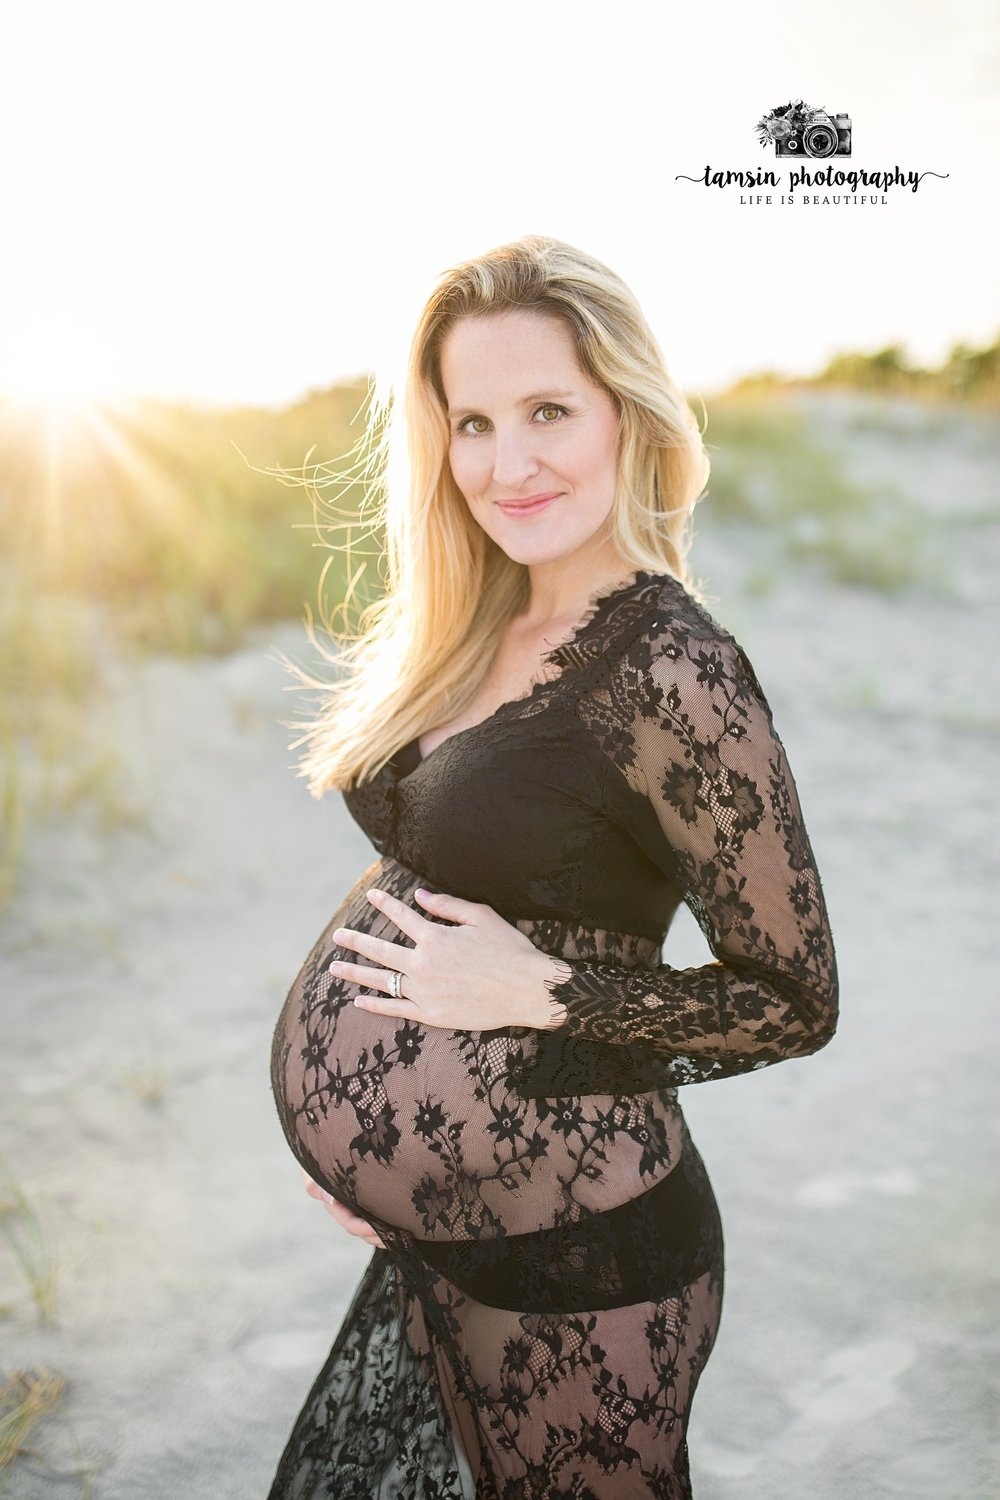 Maternity Photos Portraits Photographer Photography Melbourne Florida Brevard Space Coast Central Tamsin.jpg